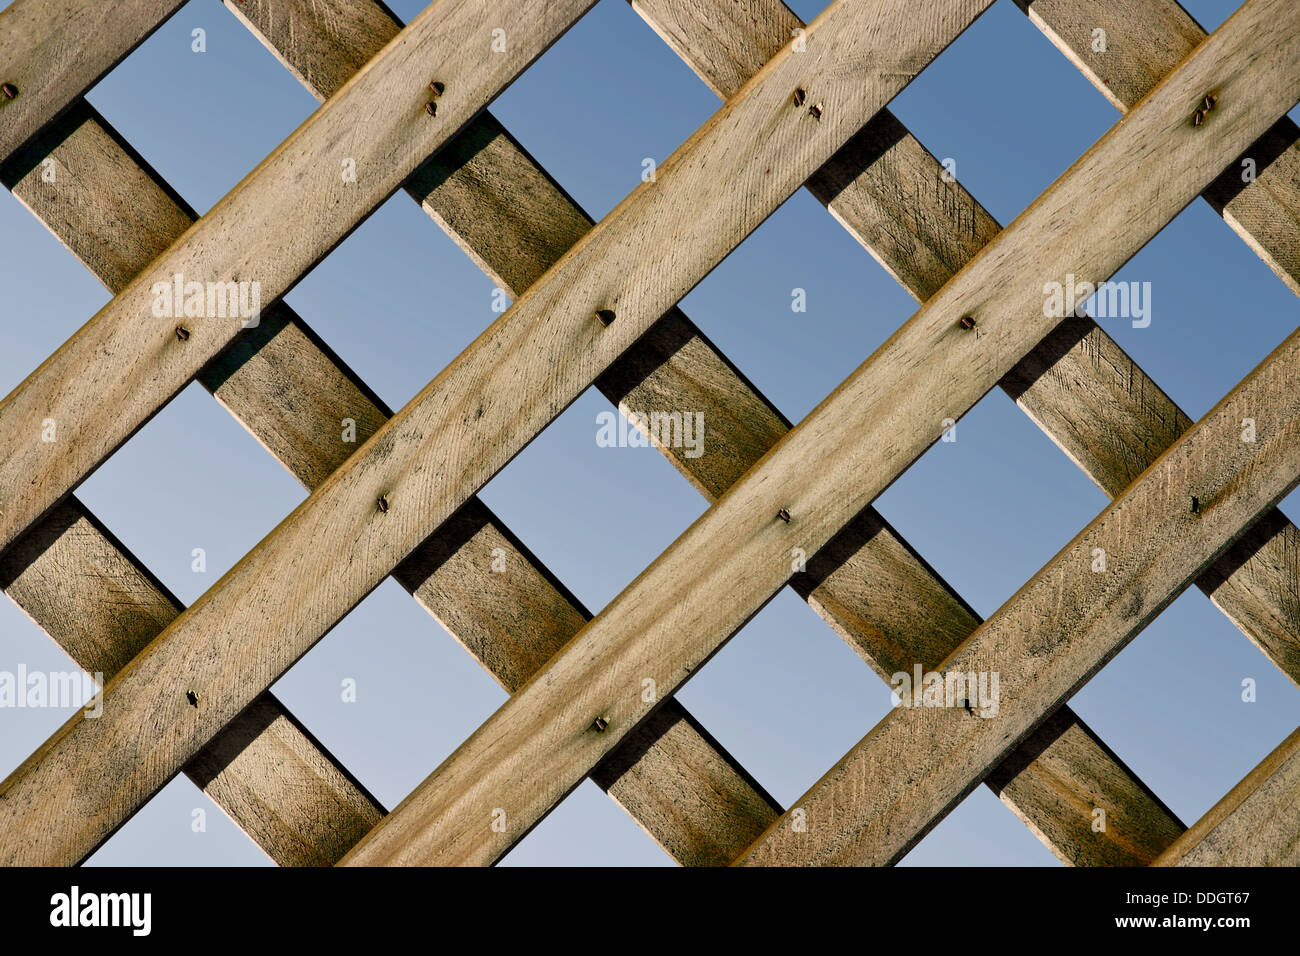 A Closeup Of A Wooden Lattice Fence With Blue Sky   Stock Image